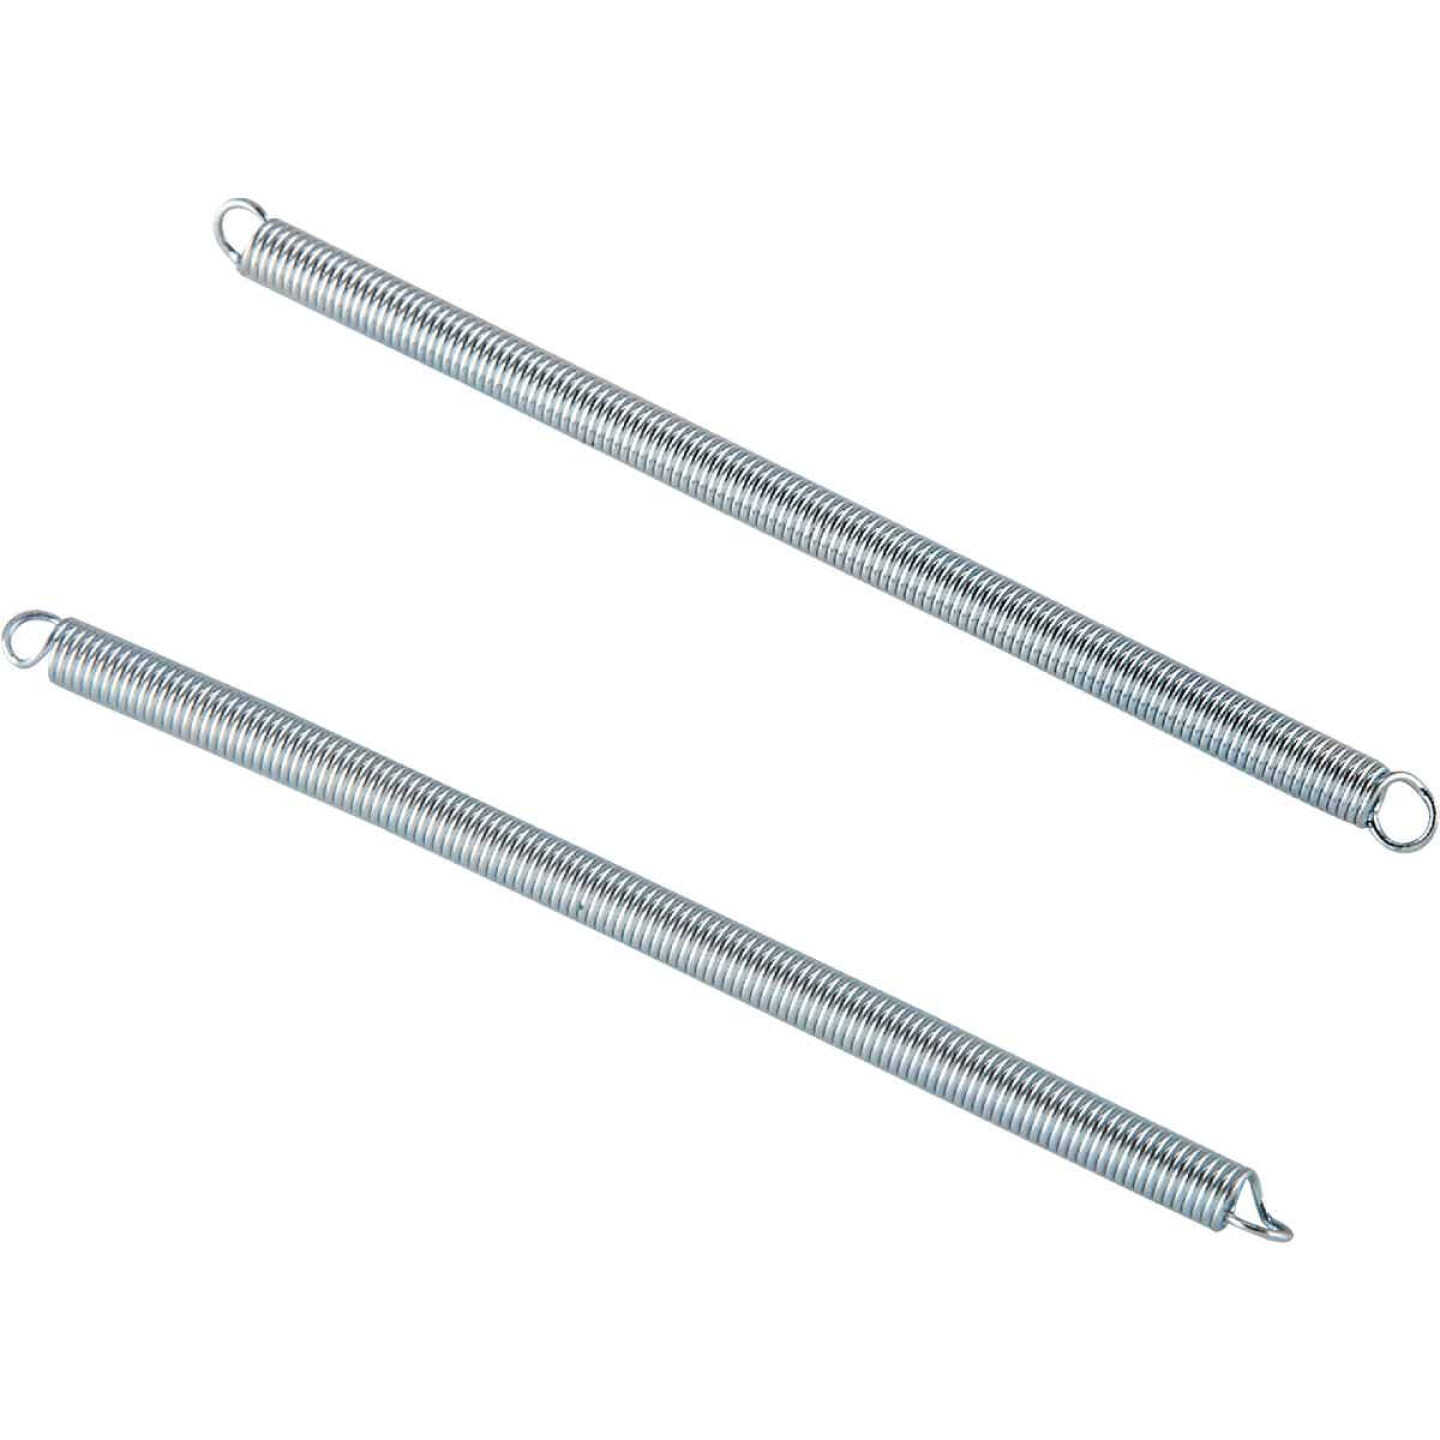 Century Spring 1-1/2 In. x 1-1/4 In. Extension Spring (2 Count) Image 1